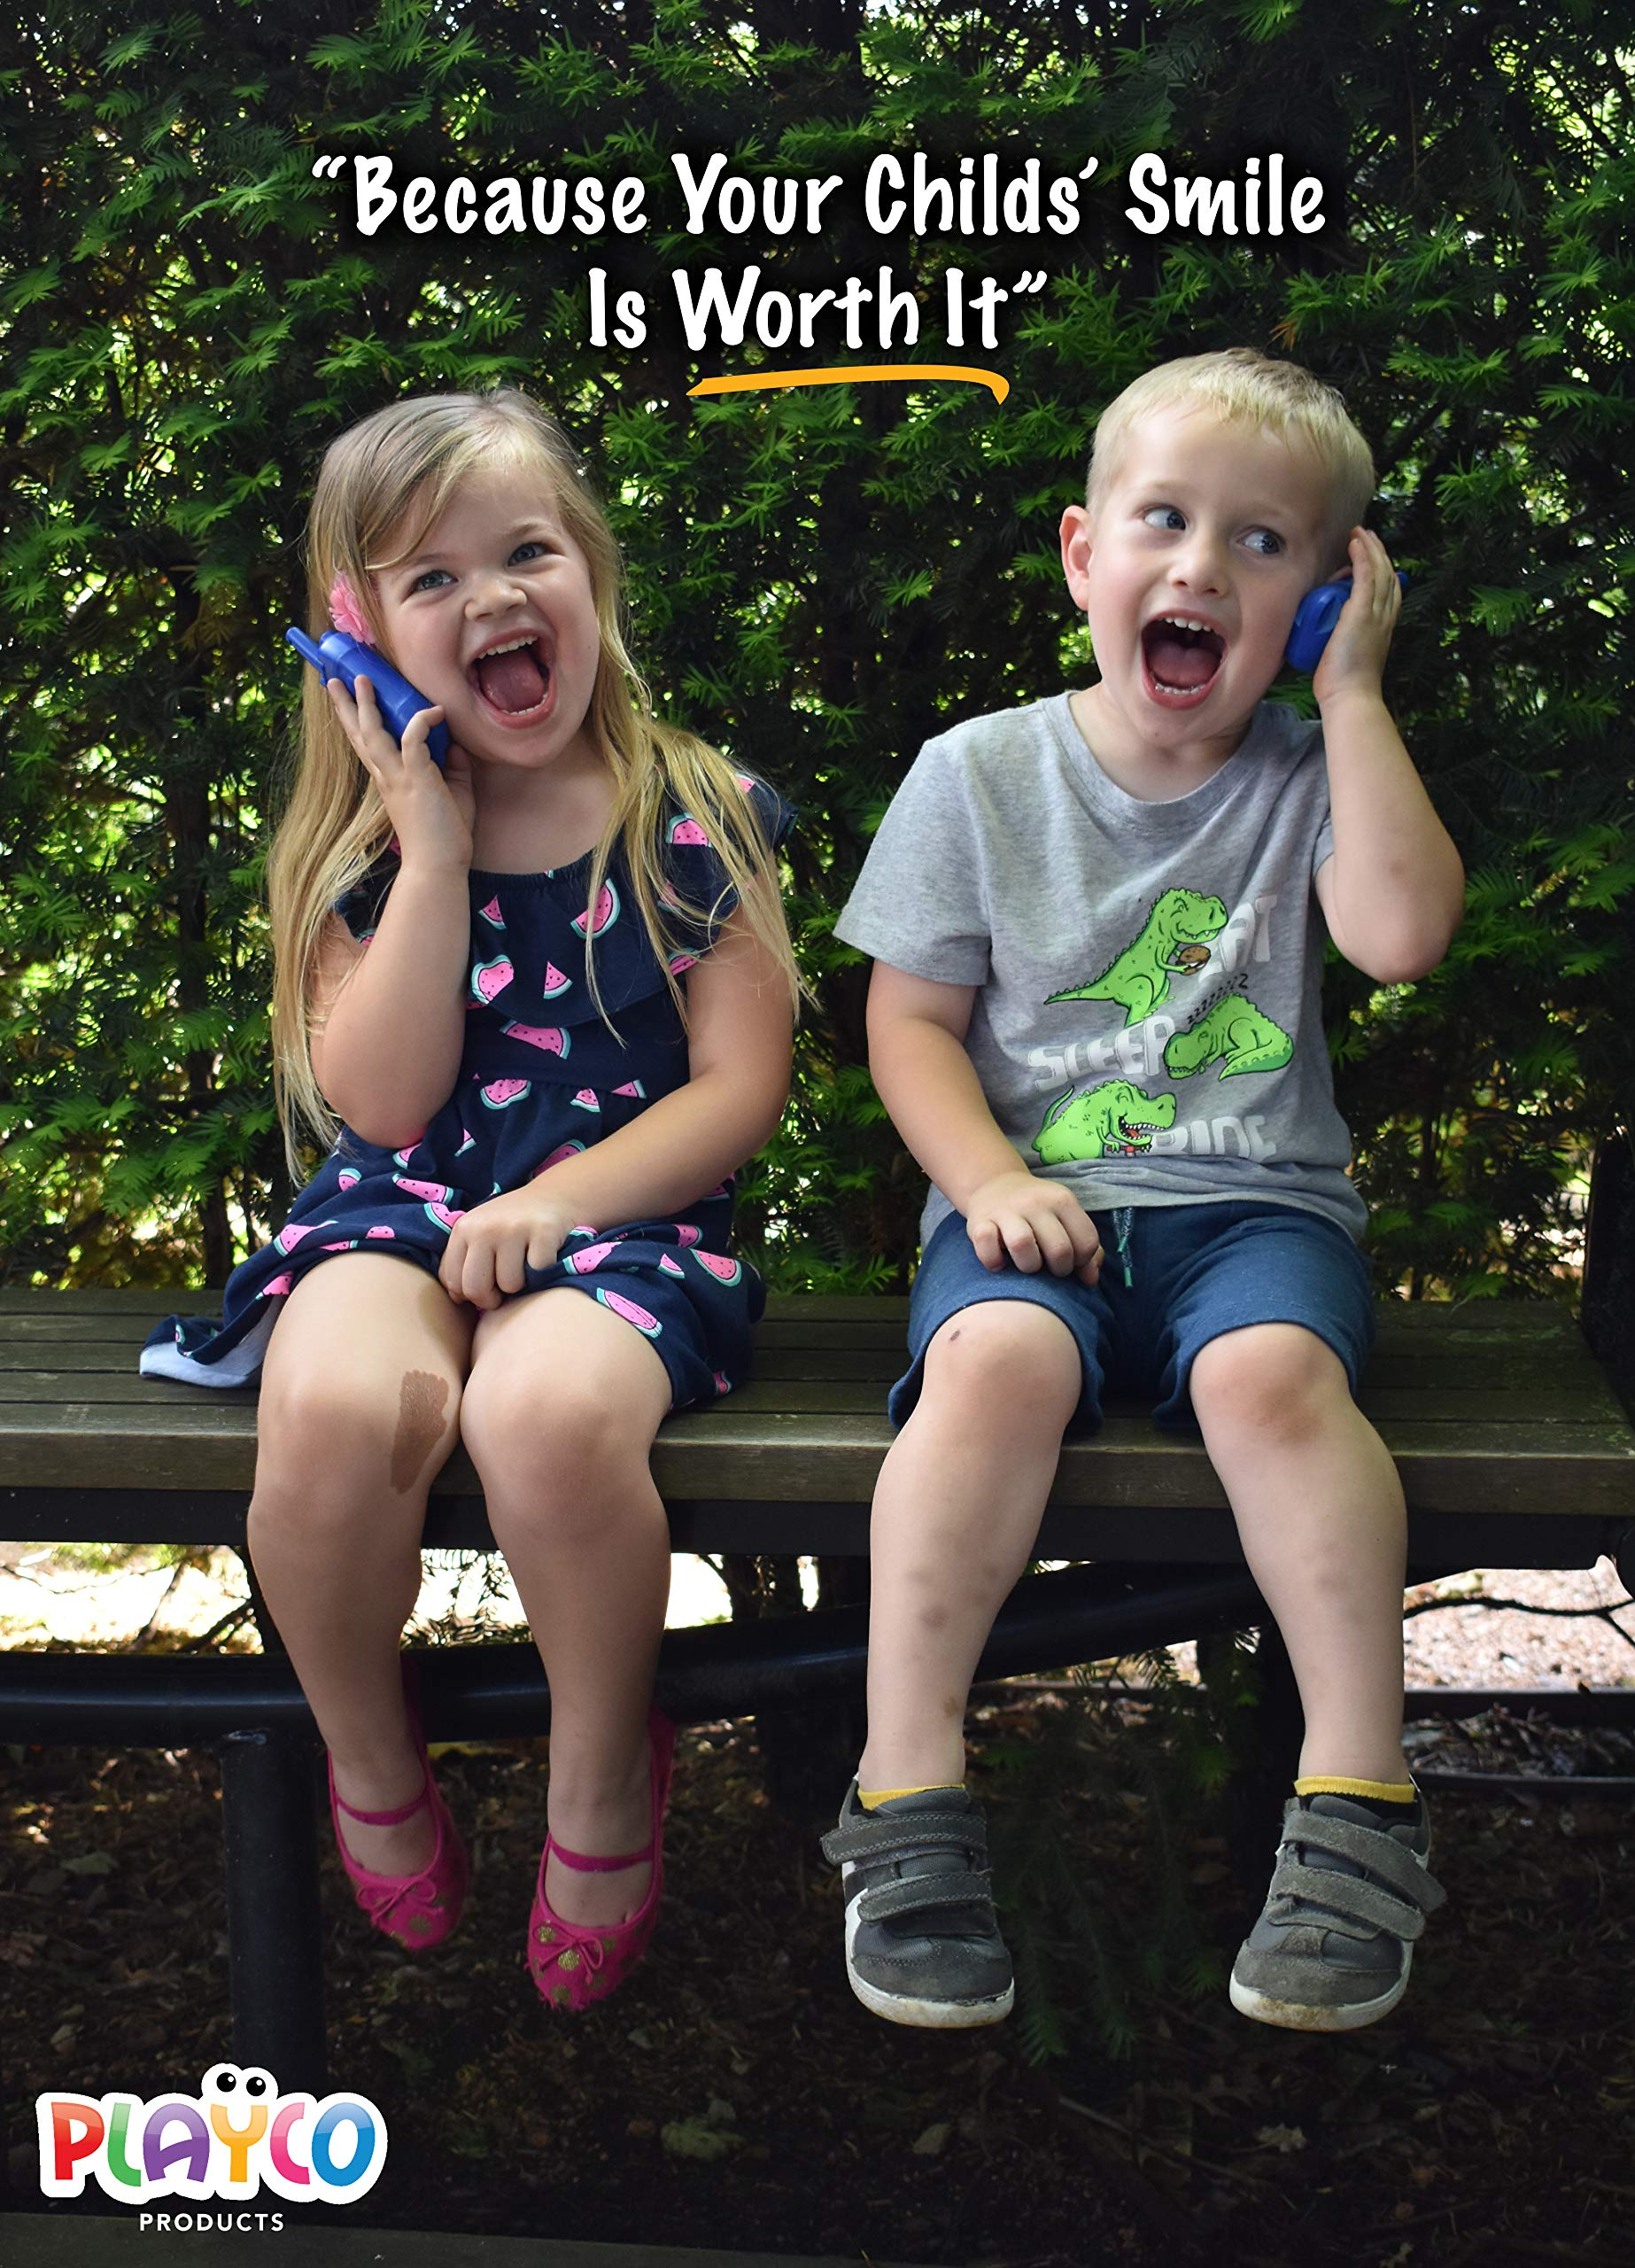 Playco Walkie Talkies and Binoculars for Kids - 2 Mile Range, Crystal Clear Sound, 8X21 Optical Lens by Playco (Image #4)